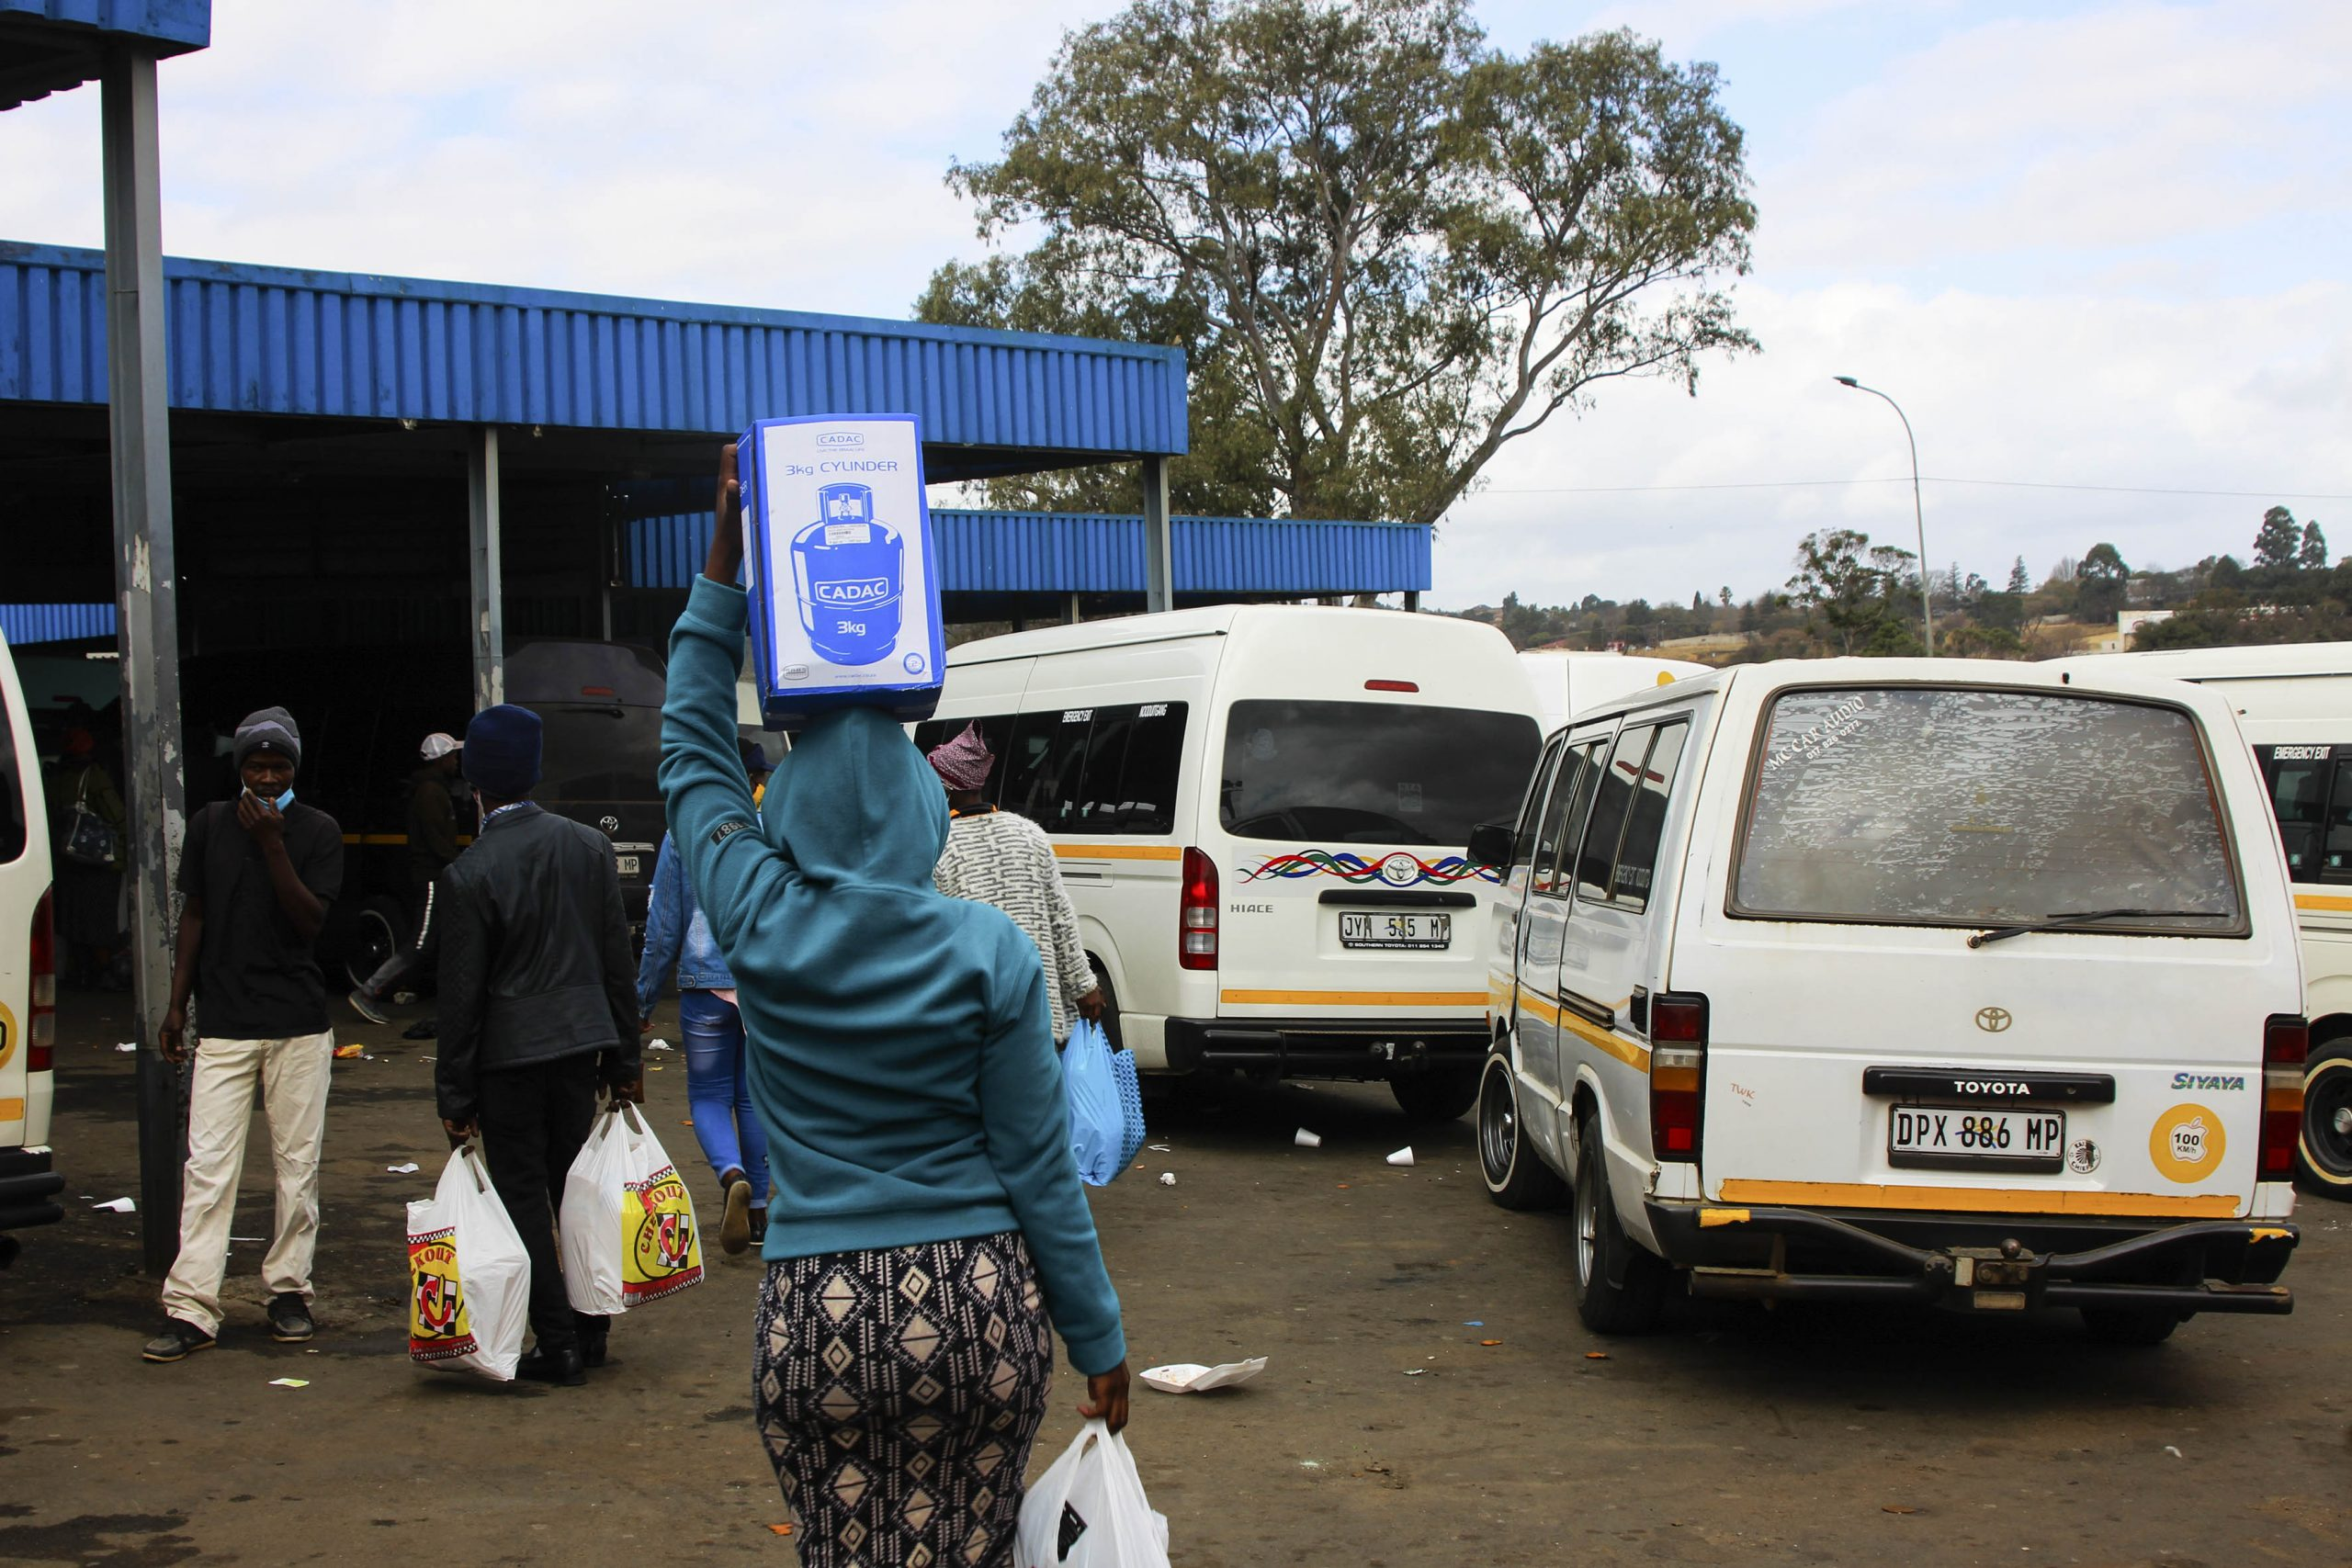 8 June 2020: Low-income earners from surrounding villages and townships depend on taxis when they need transport to buy groceries in Mkhondo. (Photograph by Magnificent Mndebele)